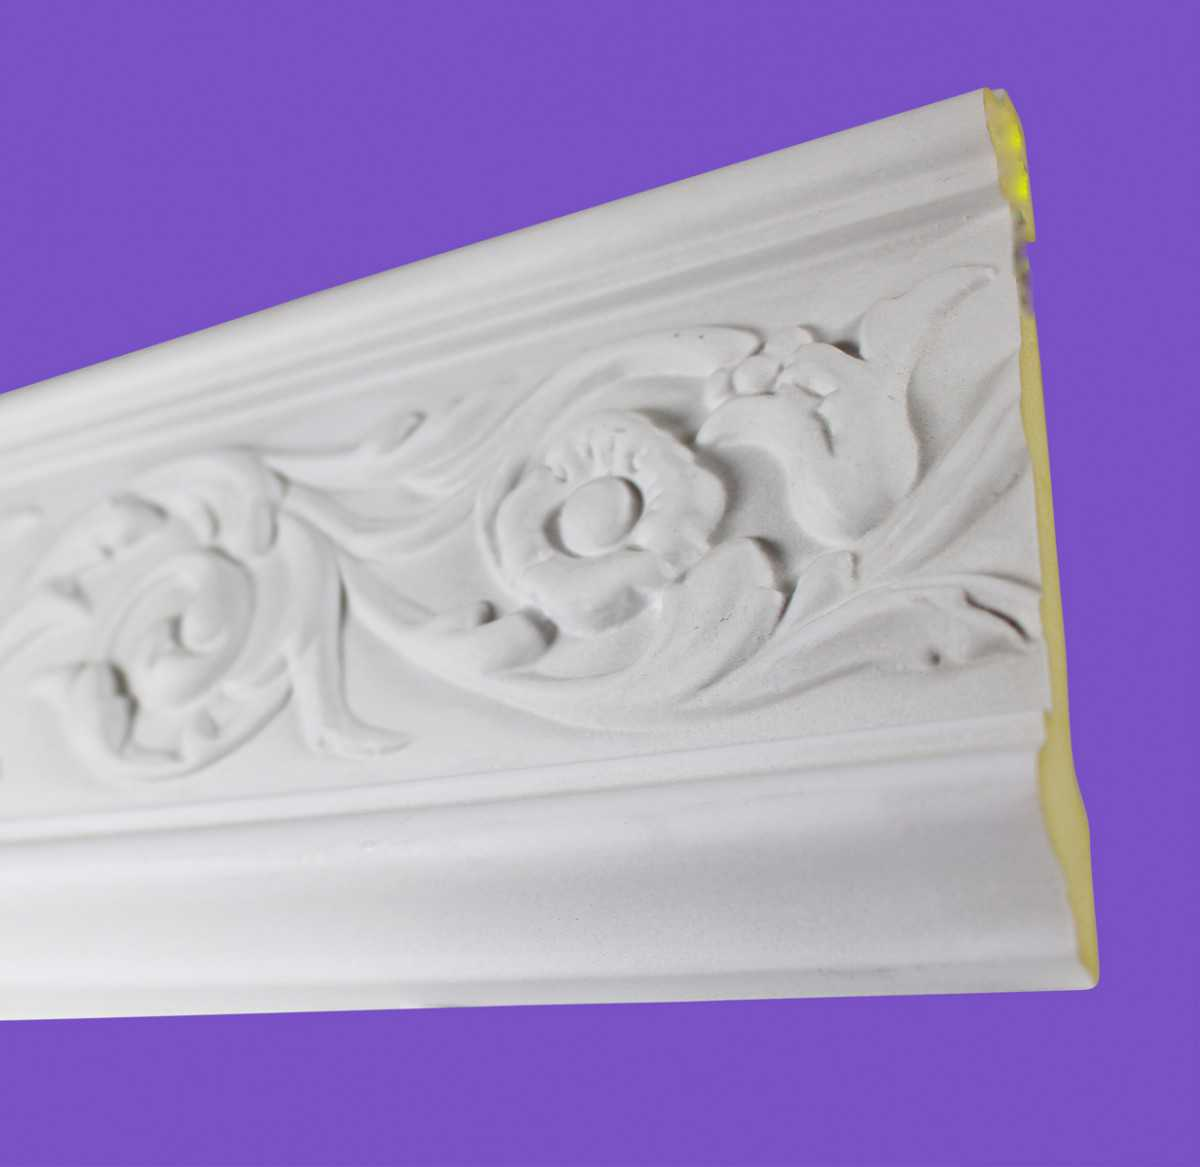 Cornice White Urethane Sample of 18872 19.75' Long | Renovator's Supply